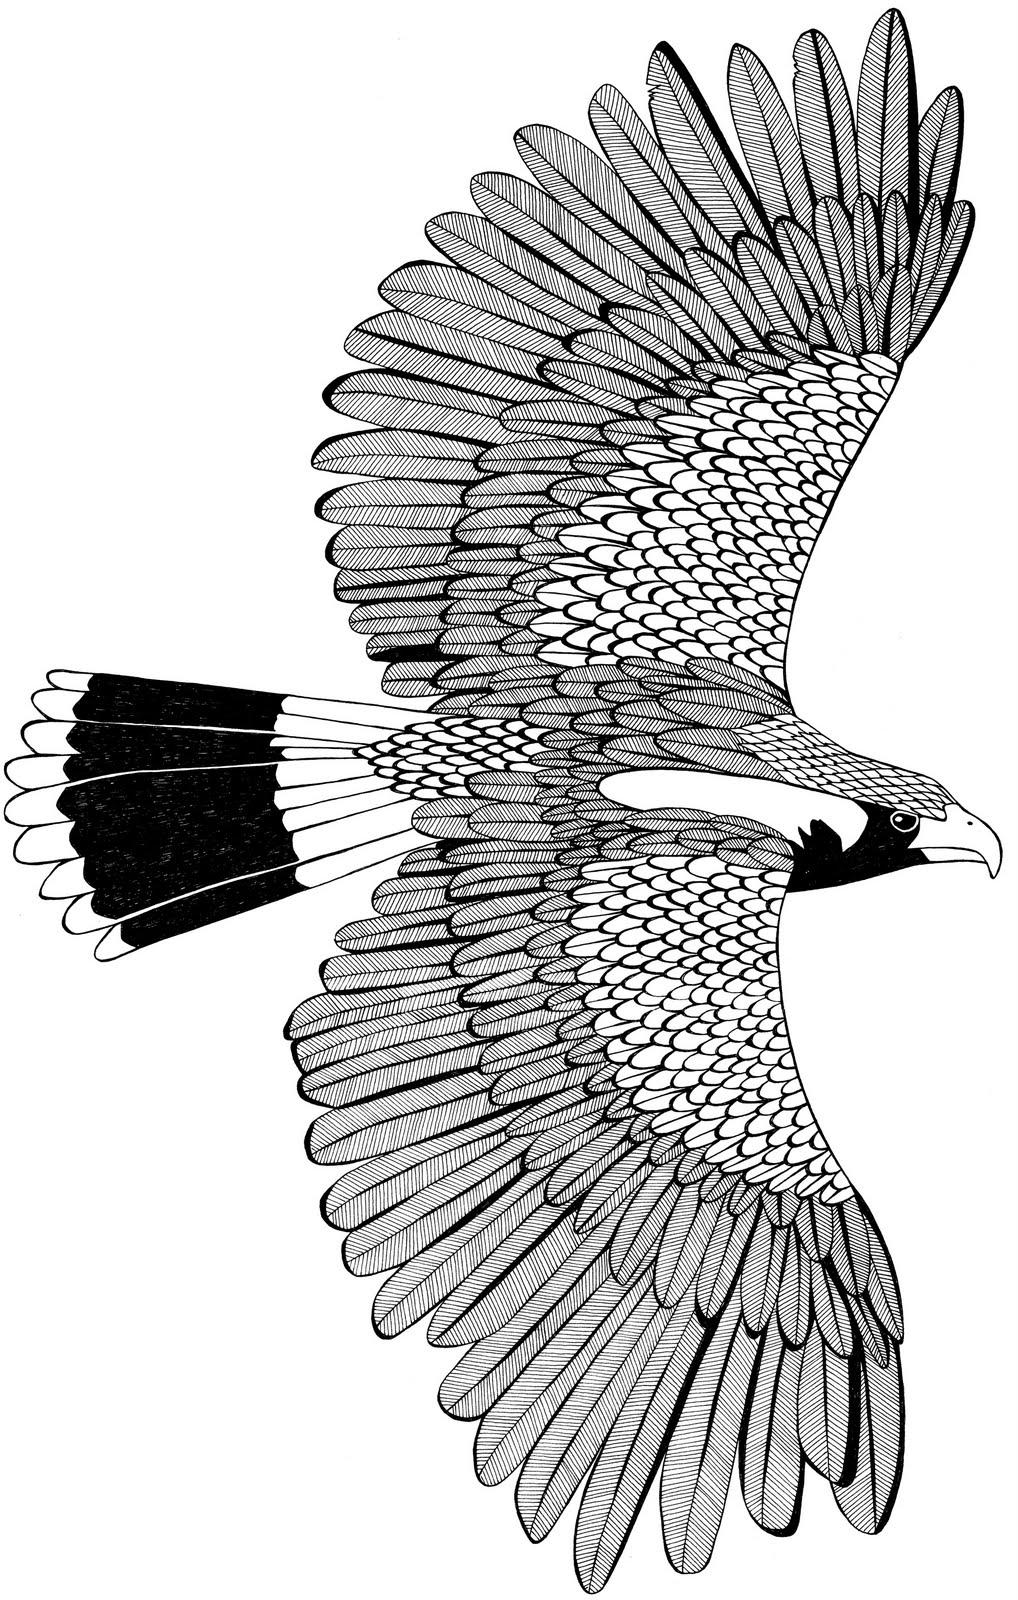 'Eagle' illustration. Pen on Paper.jpg